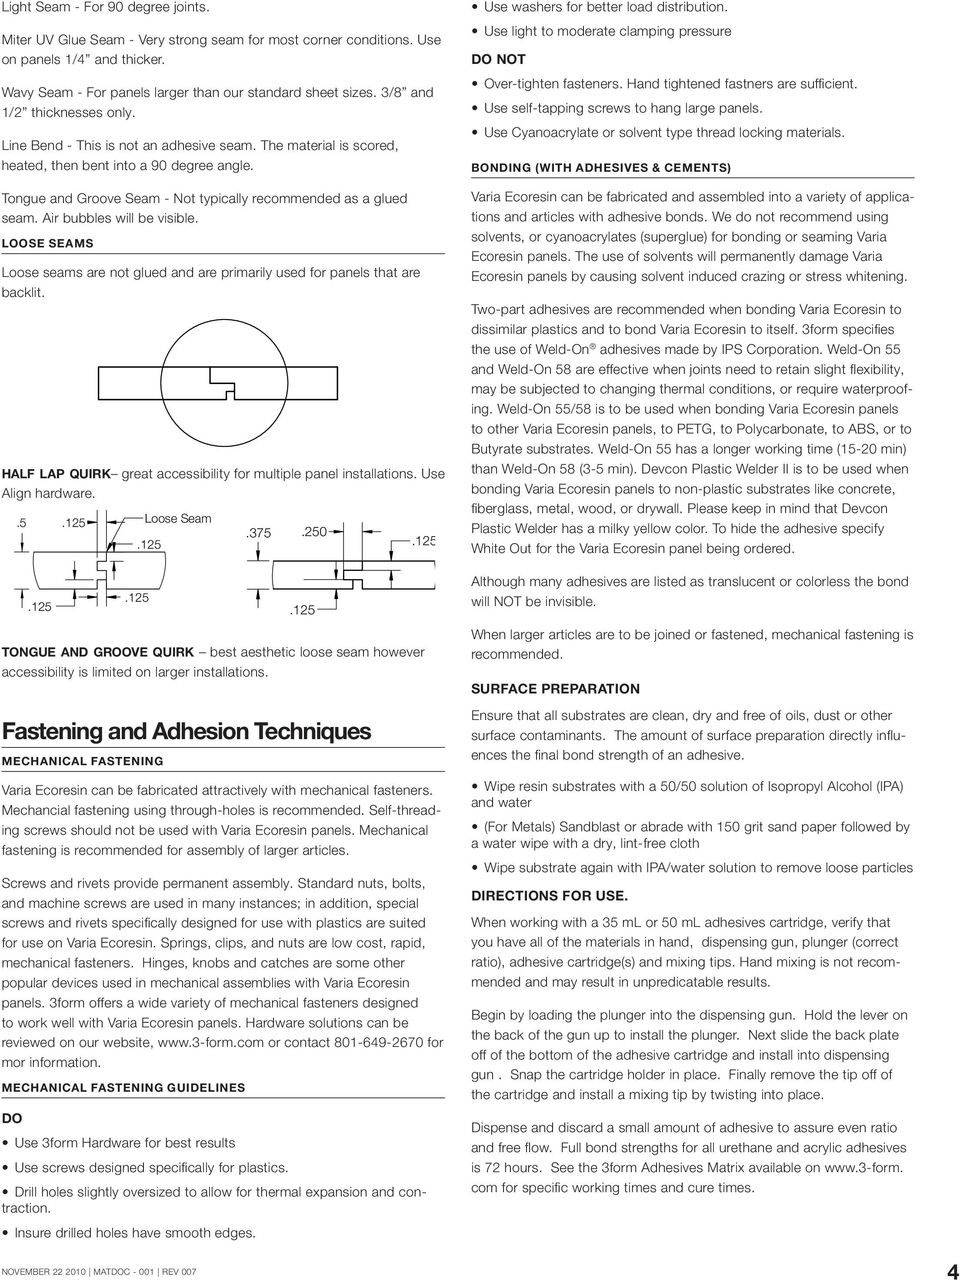 varia ecoresin fabrication manual guidelines for working with and